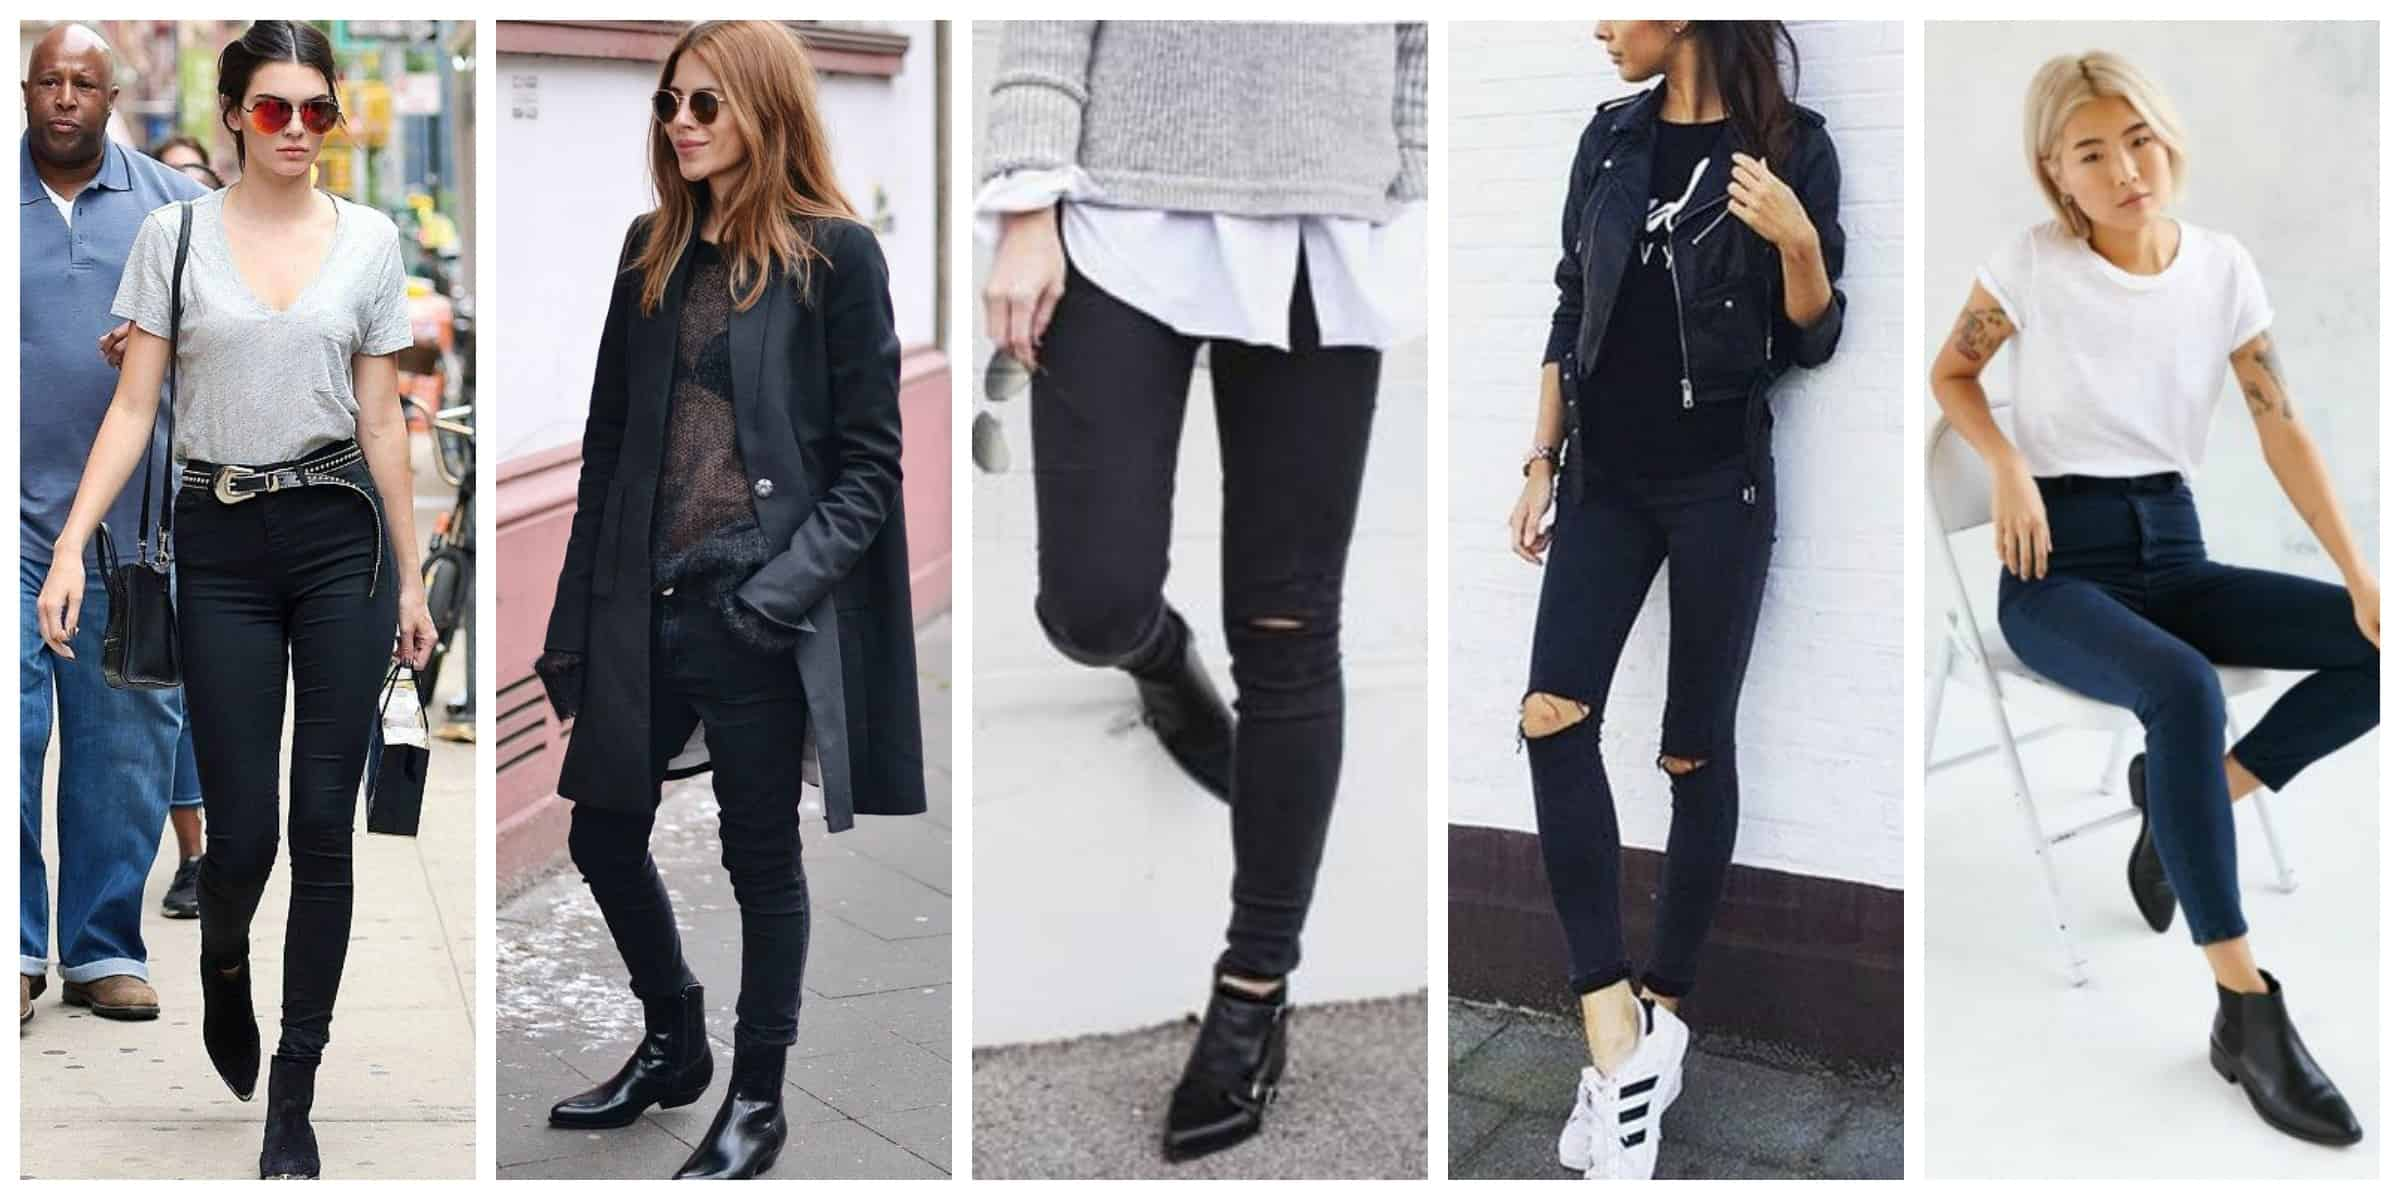 How To Wear Skinny Jeans? 6 Outfit Styles To Save The Day